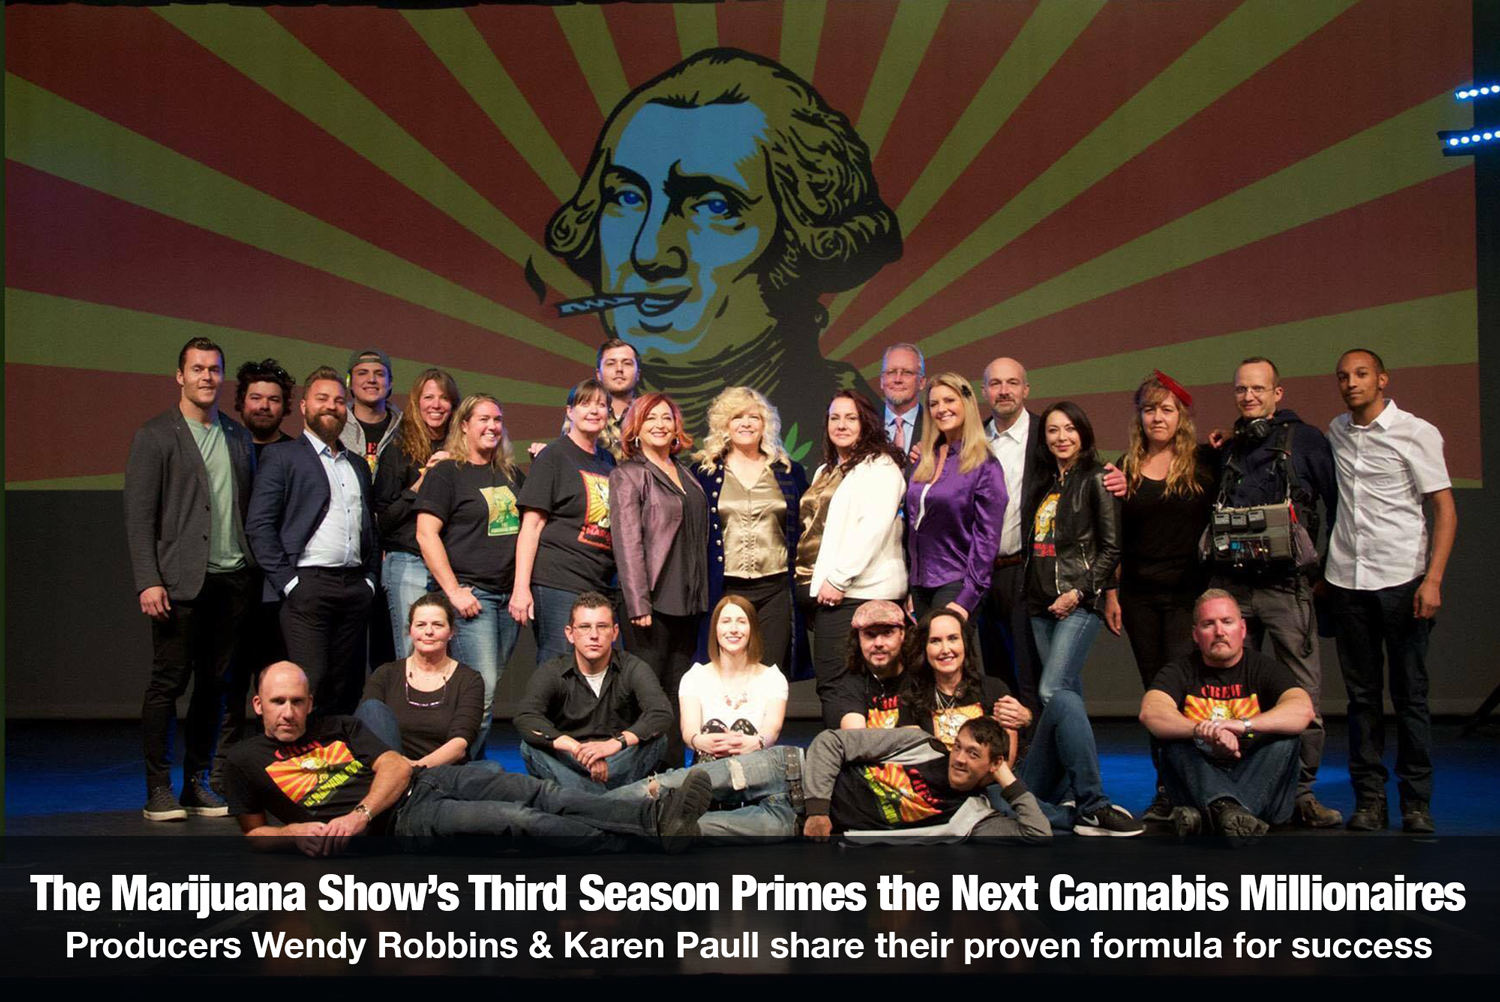 The Cannabis Reporter Radio Show hosted by Snowden Bishop - The Marijuana Show's Third Season Primes the Next Cannabis Millionaires